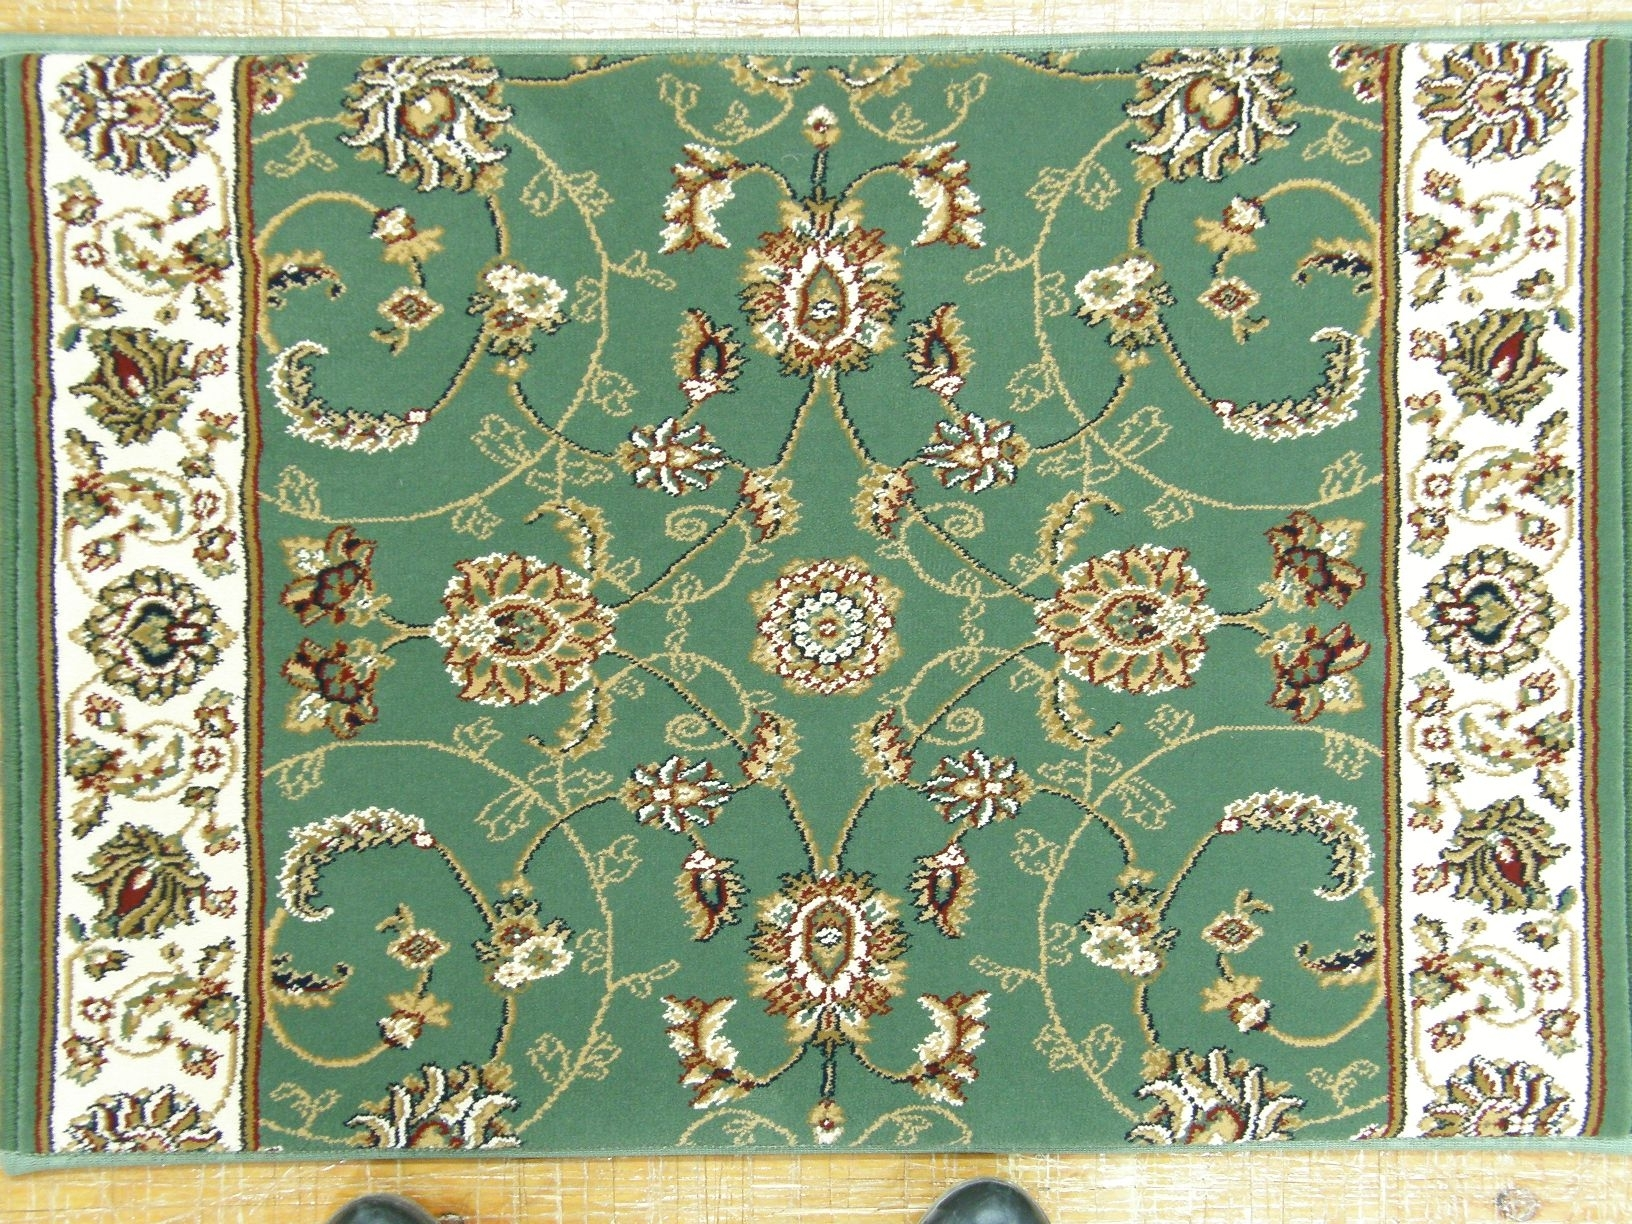 Green Persian Rugs Pink Rug Oriental Rug Manual 09 Intended For Green Persian Rugs (Image 10 of 15)